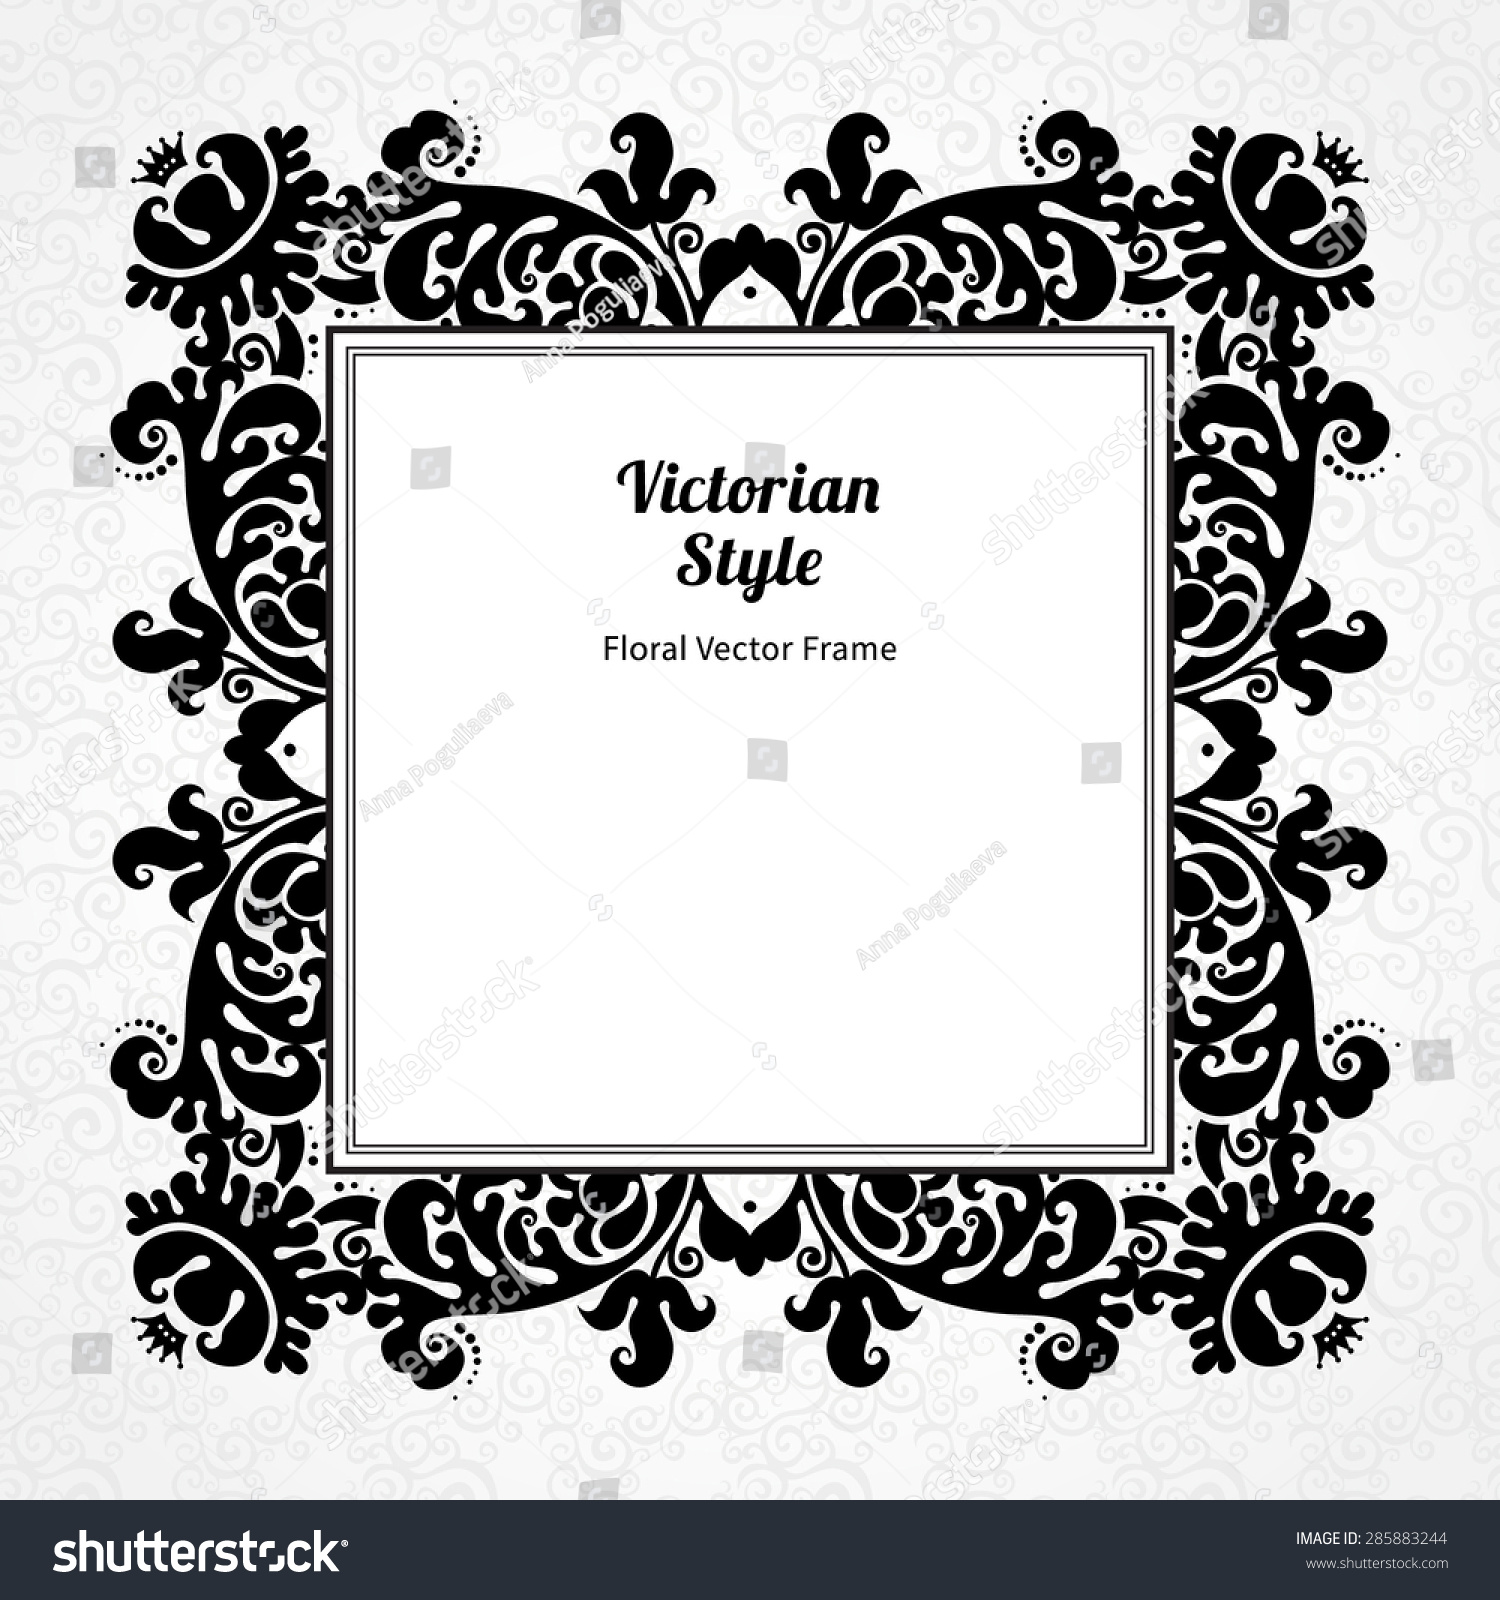 Border frame victorian A4 Size Vector Decorative Frame In Victorian Style Elegant Element For Design Template Contrast Black And White Border Floral Decor For Birthday And Greeting Shutterstock Vector Decorative Frame Victorian Style Elegant Stock Vector